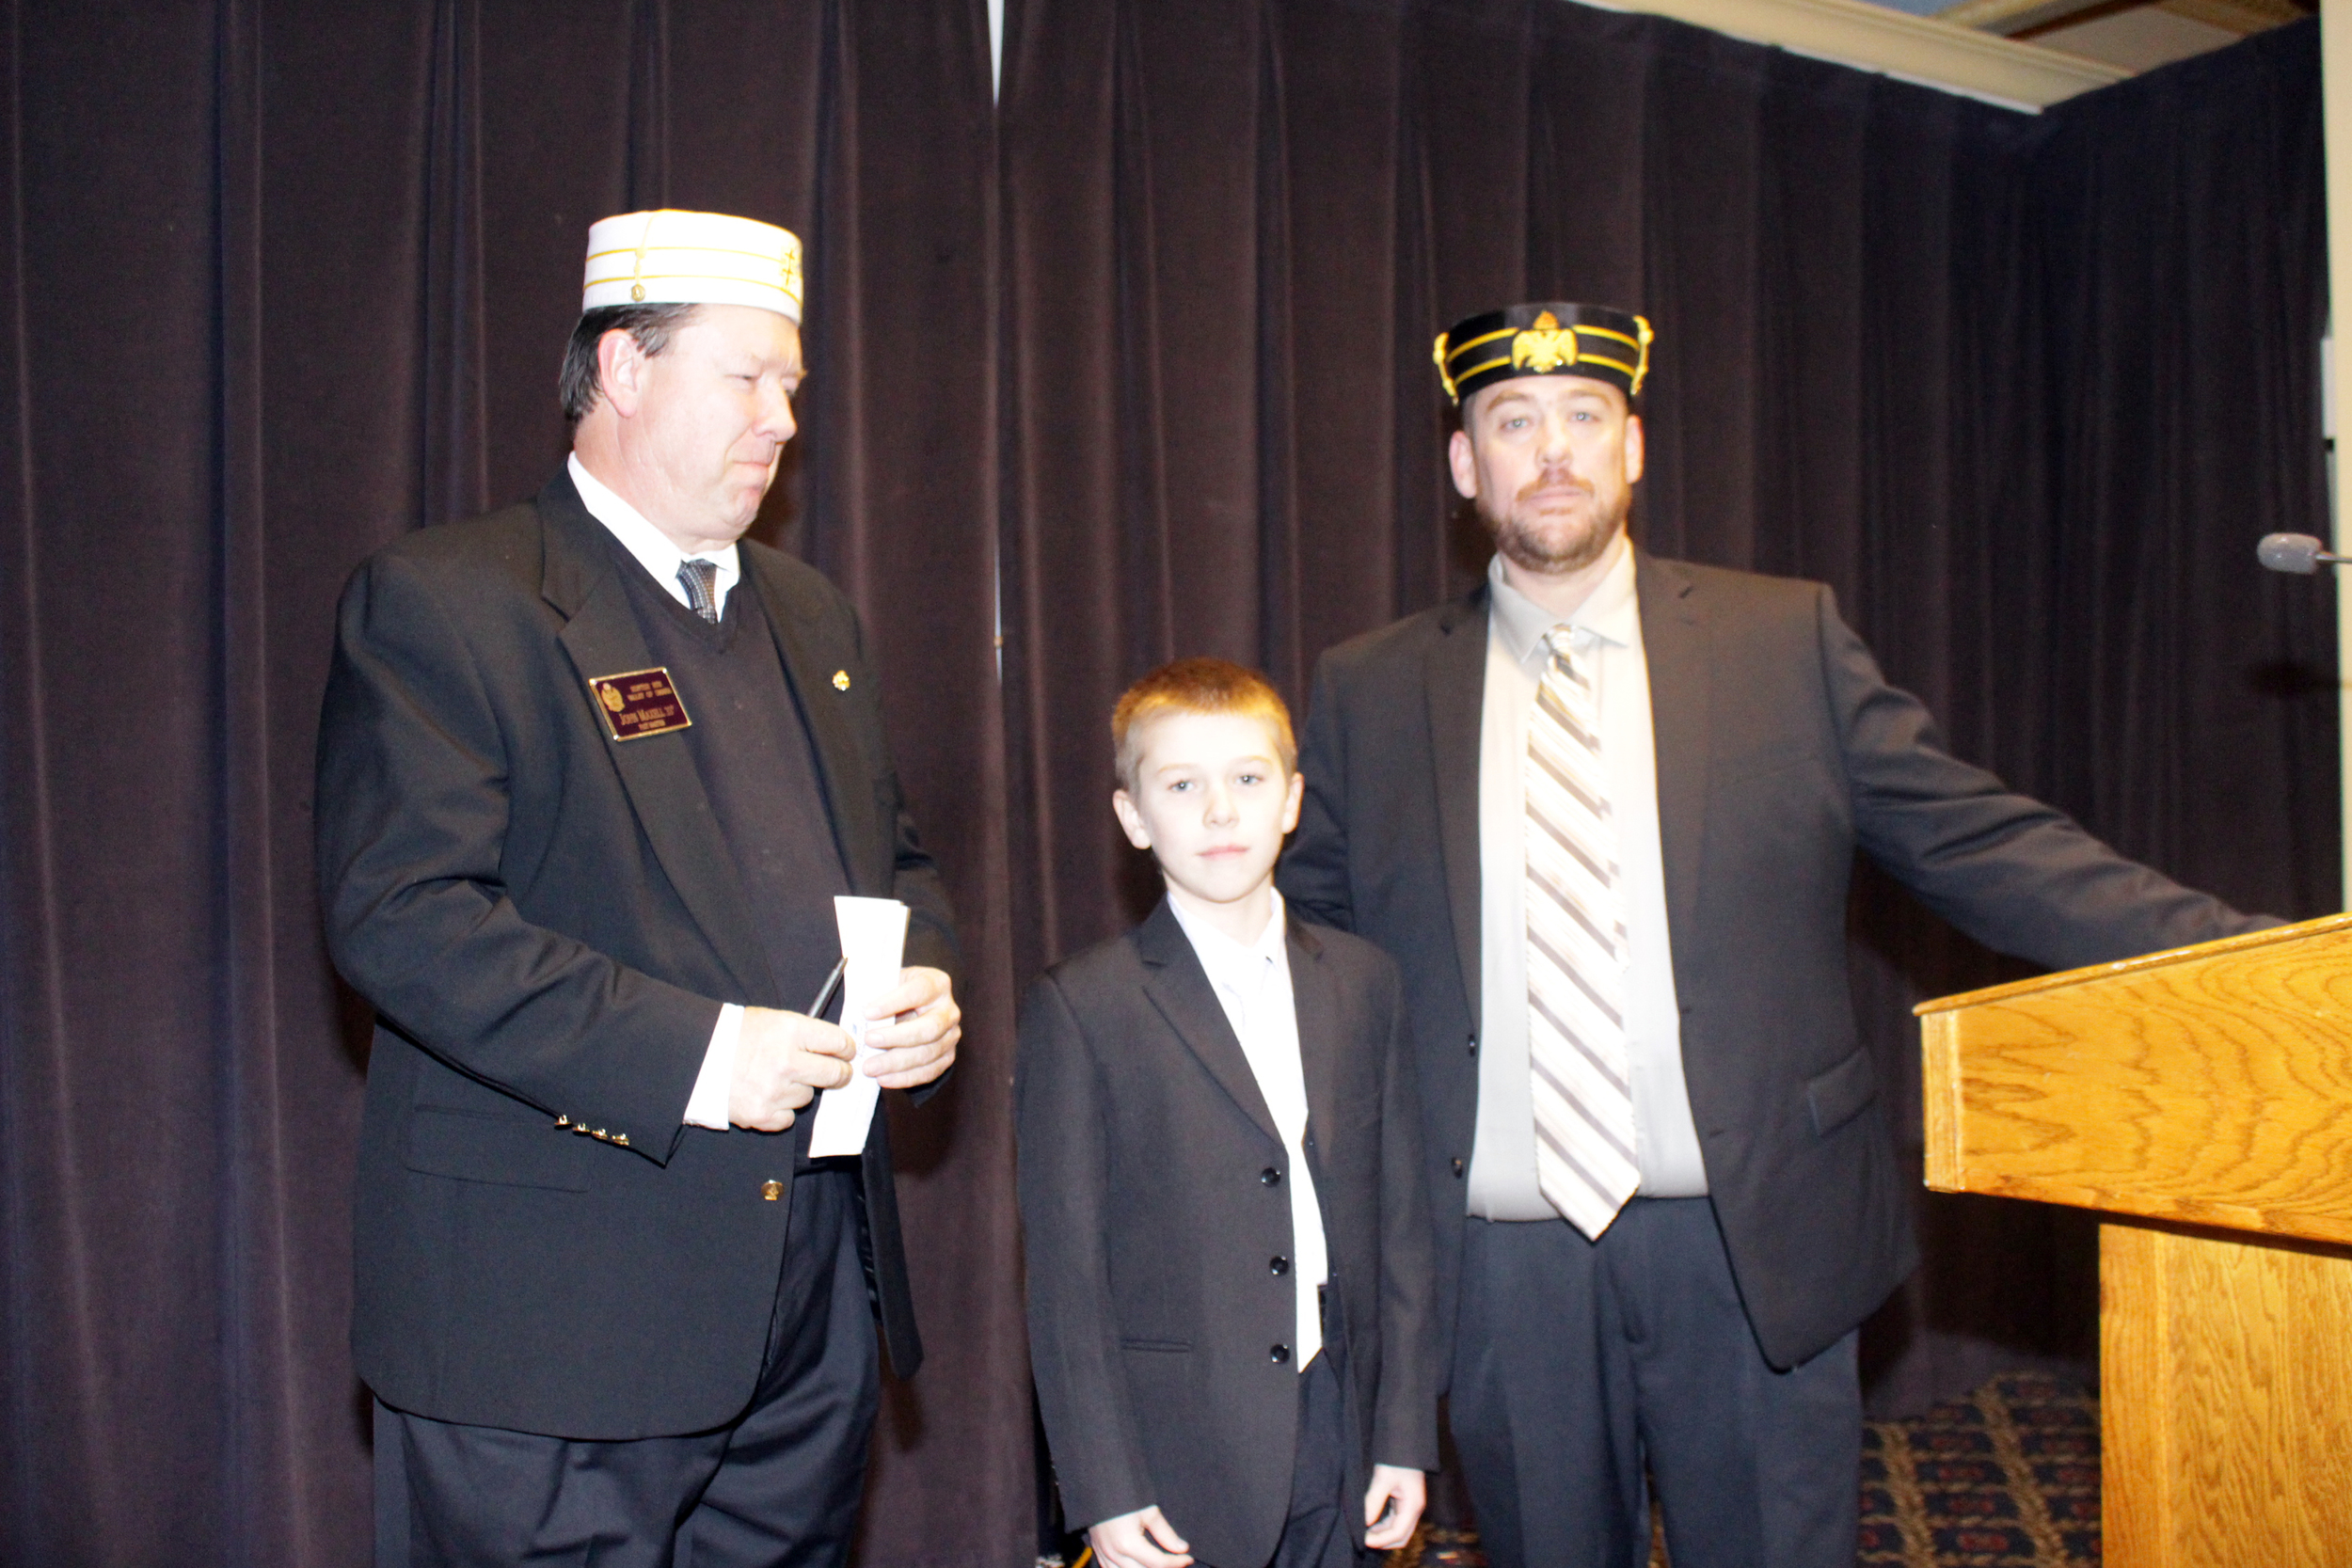 Mike O'Donnell, 32°, assisted by son Kody, presents a check for $5,000 to John Maxell, 33°, at the November 16 Lodge dinner.